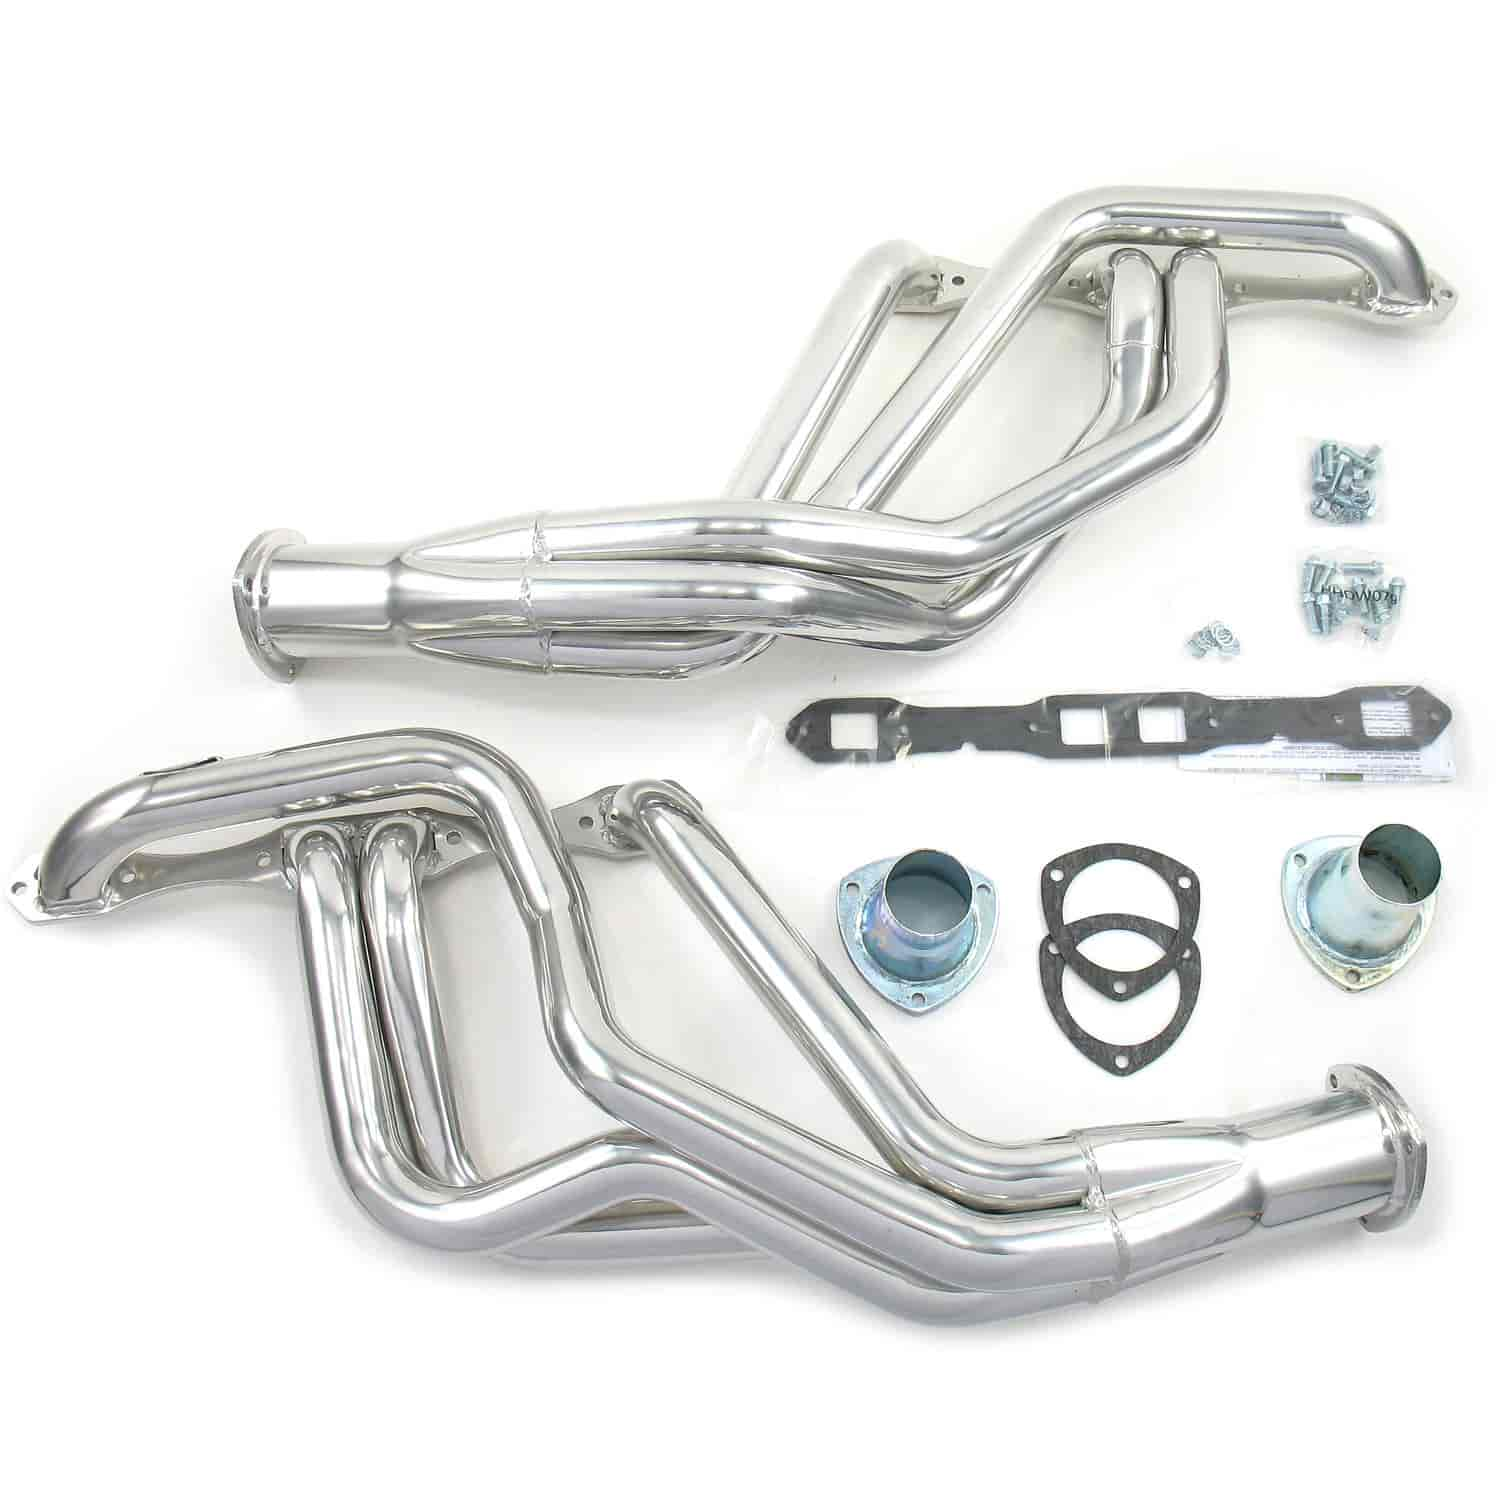 Doug s Headers D452 Metallic Ceramic Coated Headers 1962 1974